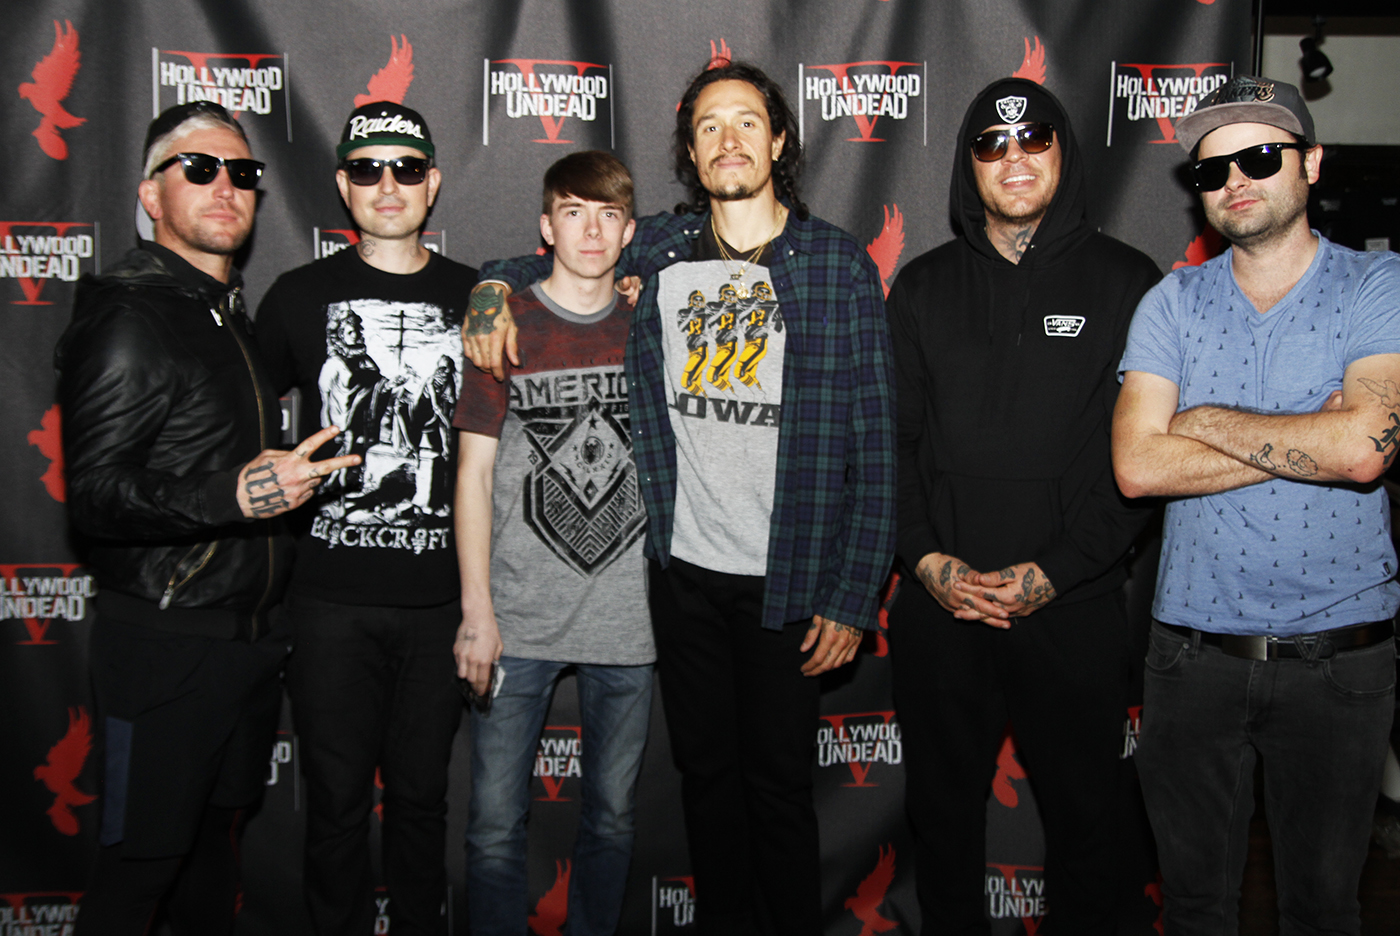 Hollywood Undead Meet And Greet Lazer 1033